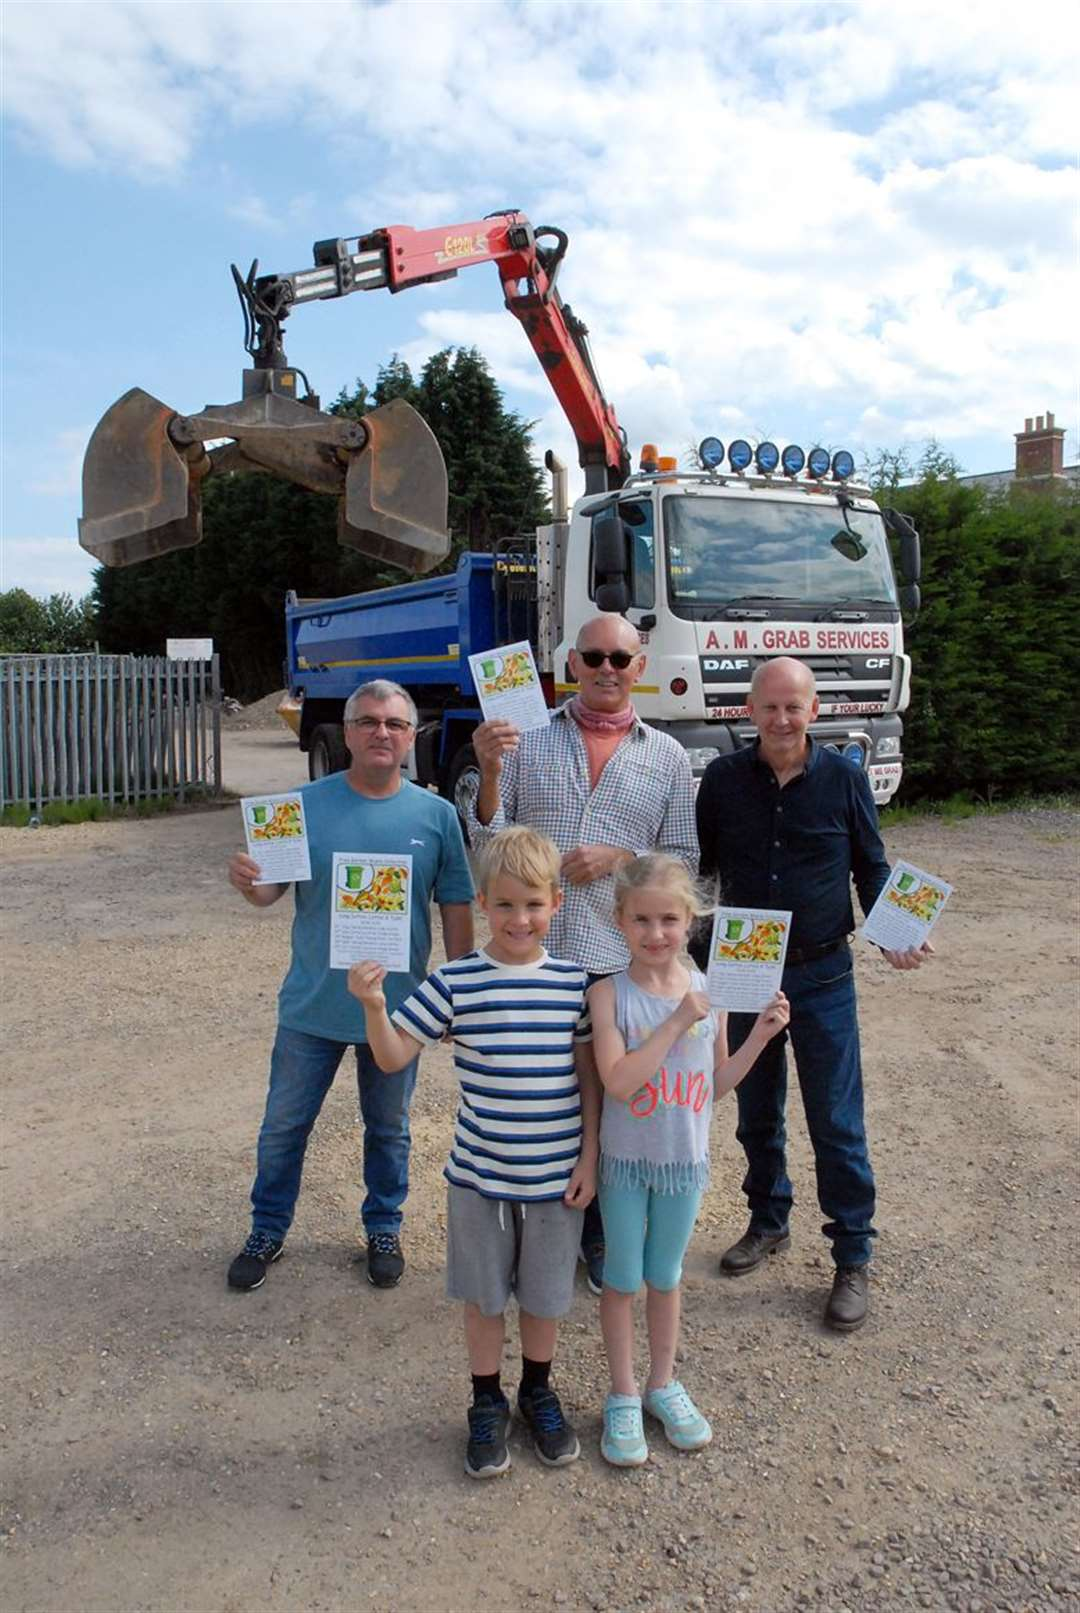 Andy McGee (left), of A M Grab Services, with councillors David Wilkinson and Jack Tyrrell, and (front) Max and Lucy Wilkinson.